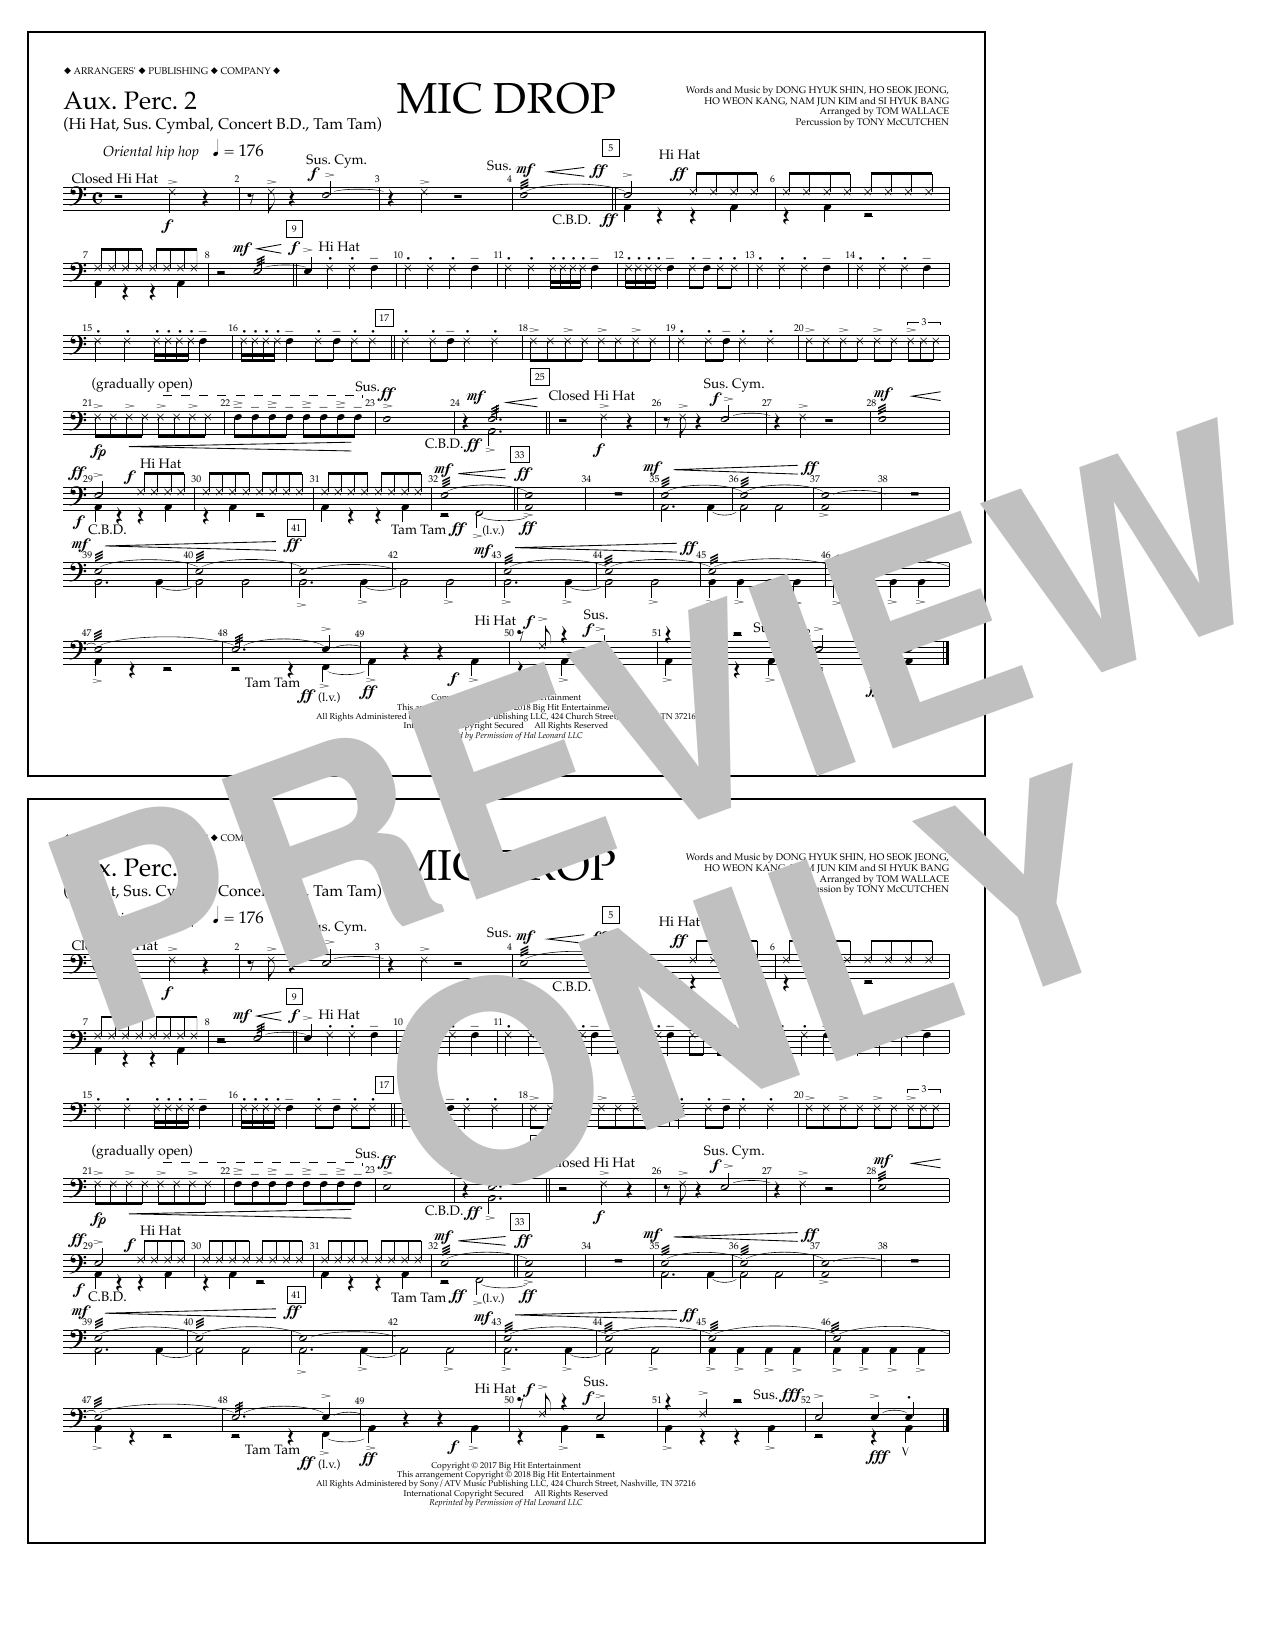 Download Tom Wallace 'Mic Drop - Aux. Perc. 2' Digital Sheet Music Notes & Chords and start playing in minutes